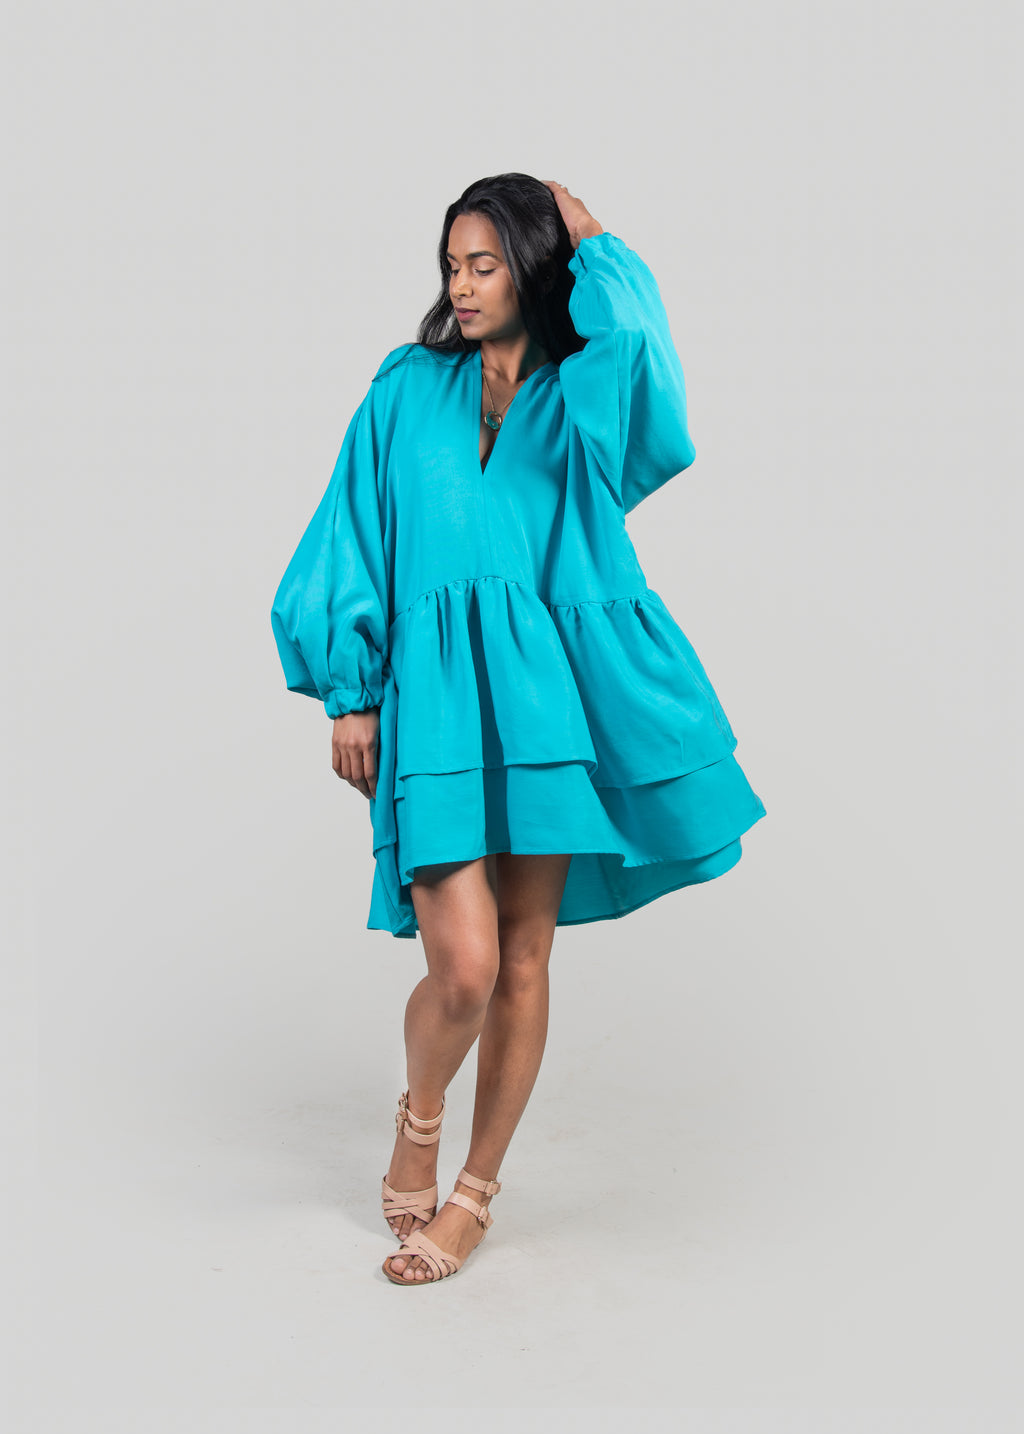 The Posey Dress in Turquoise